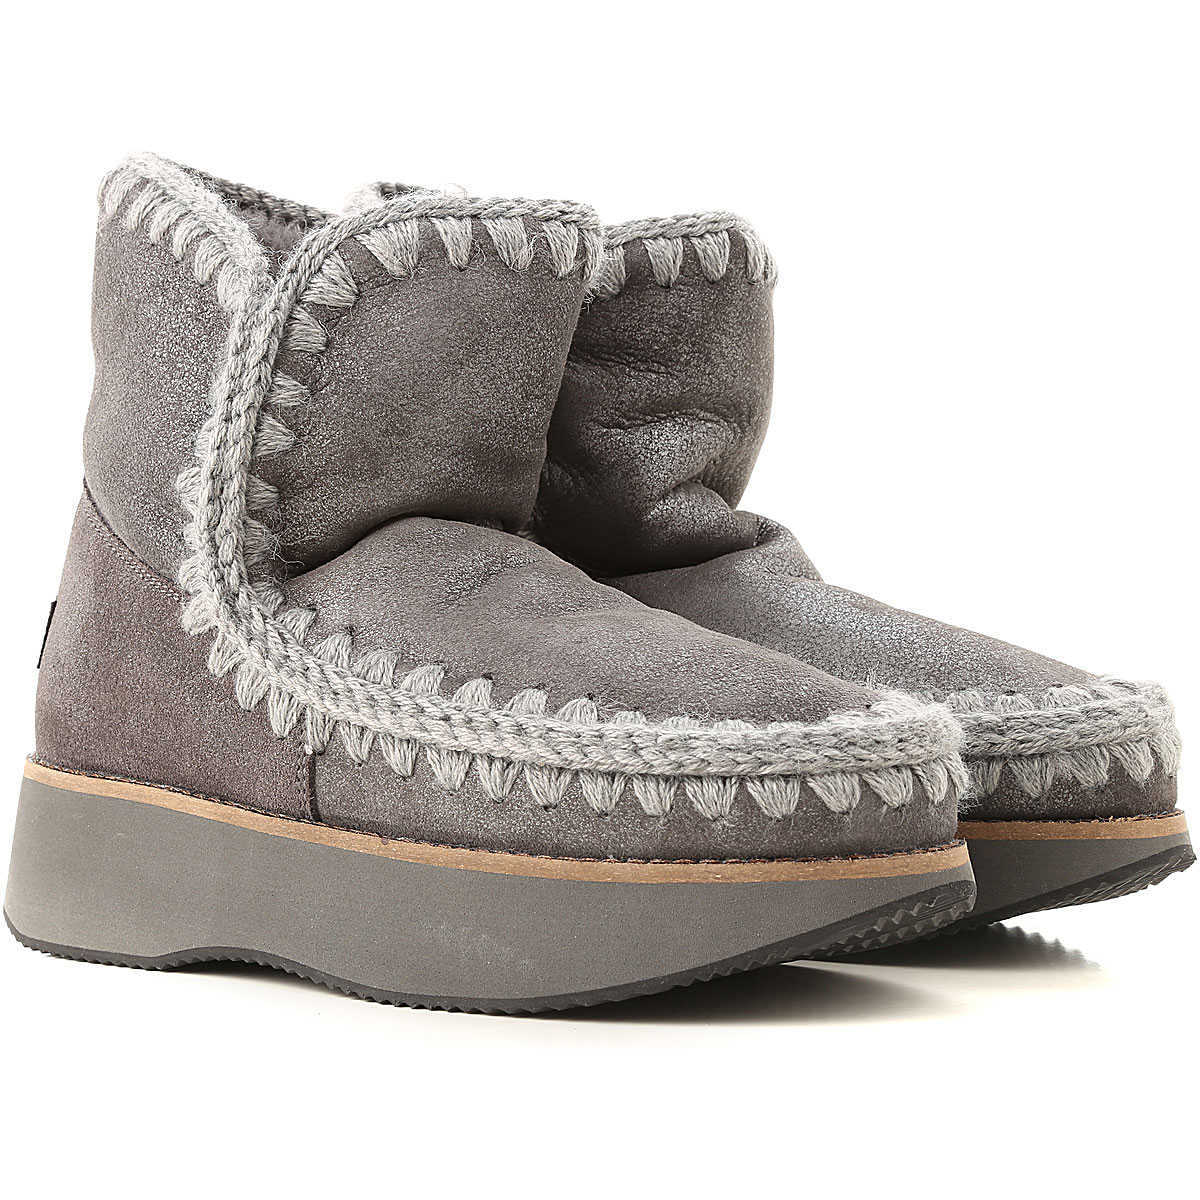 Mou Boots for Women EUR 38 - UK 5 - USA 7.5 EUR 40 - UK 7 - USA 9.5 Booties On Sale UK - GOOFASH